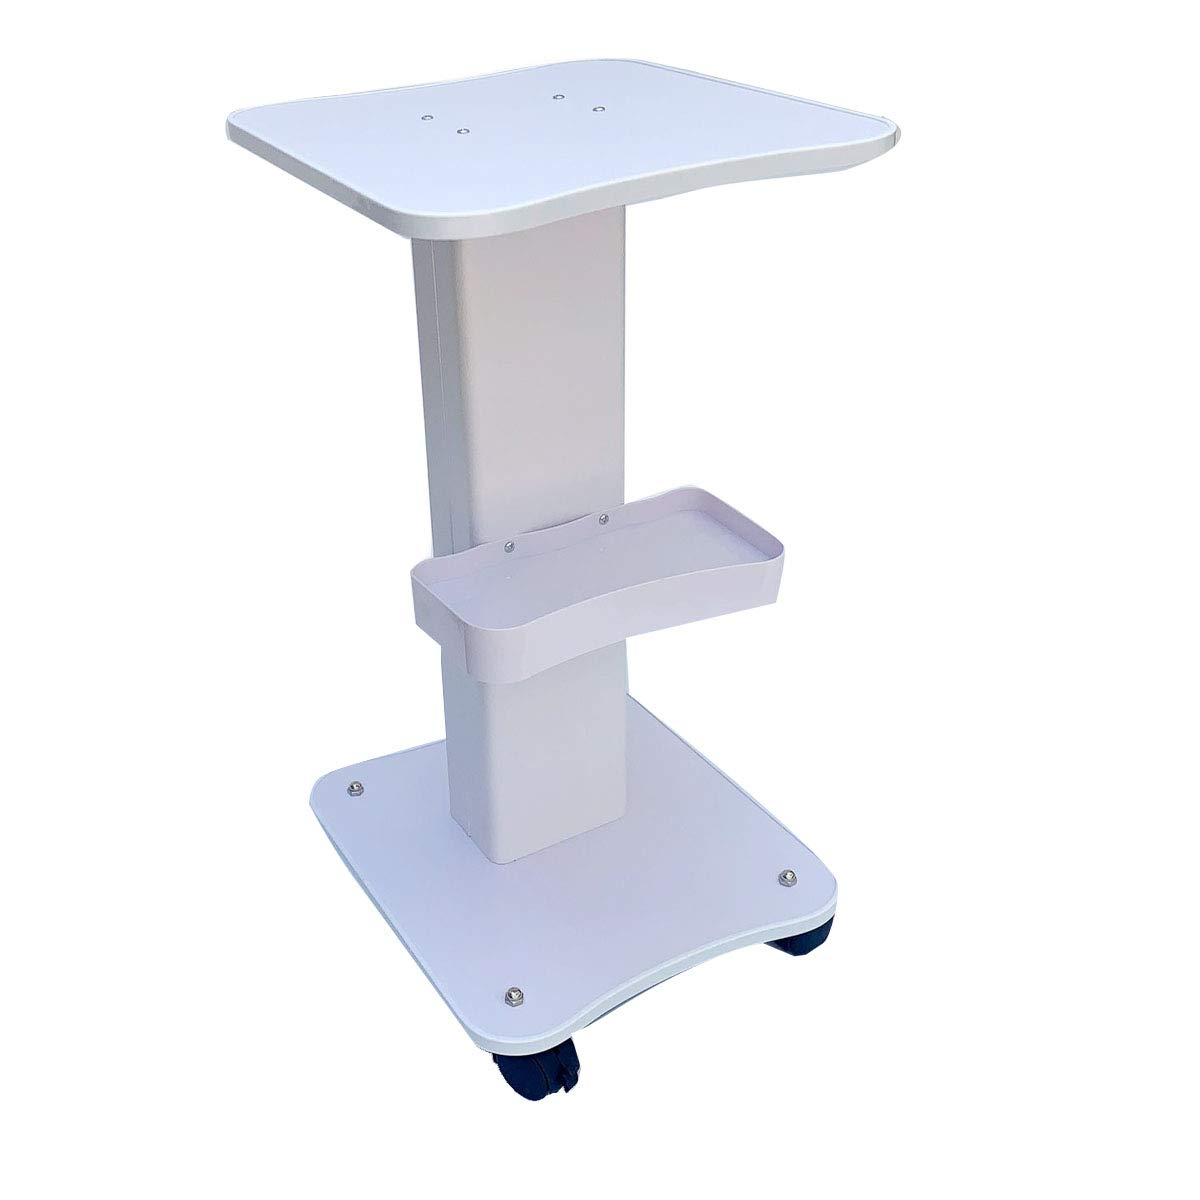 Cozyel Beauty Rolling Trolley Cart Equipment Mobile Salon Spa Service Instrument Hairdressing Storage Tray Iron Frame White